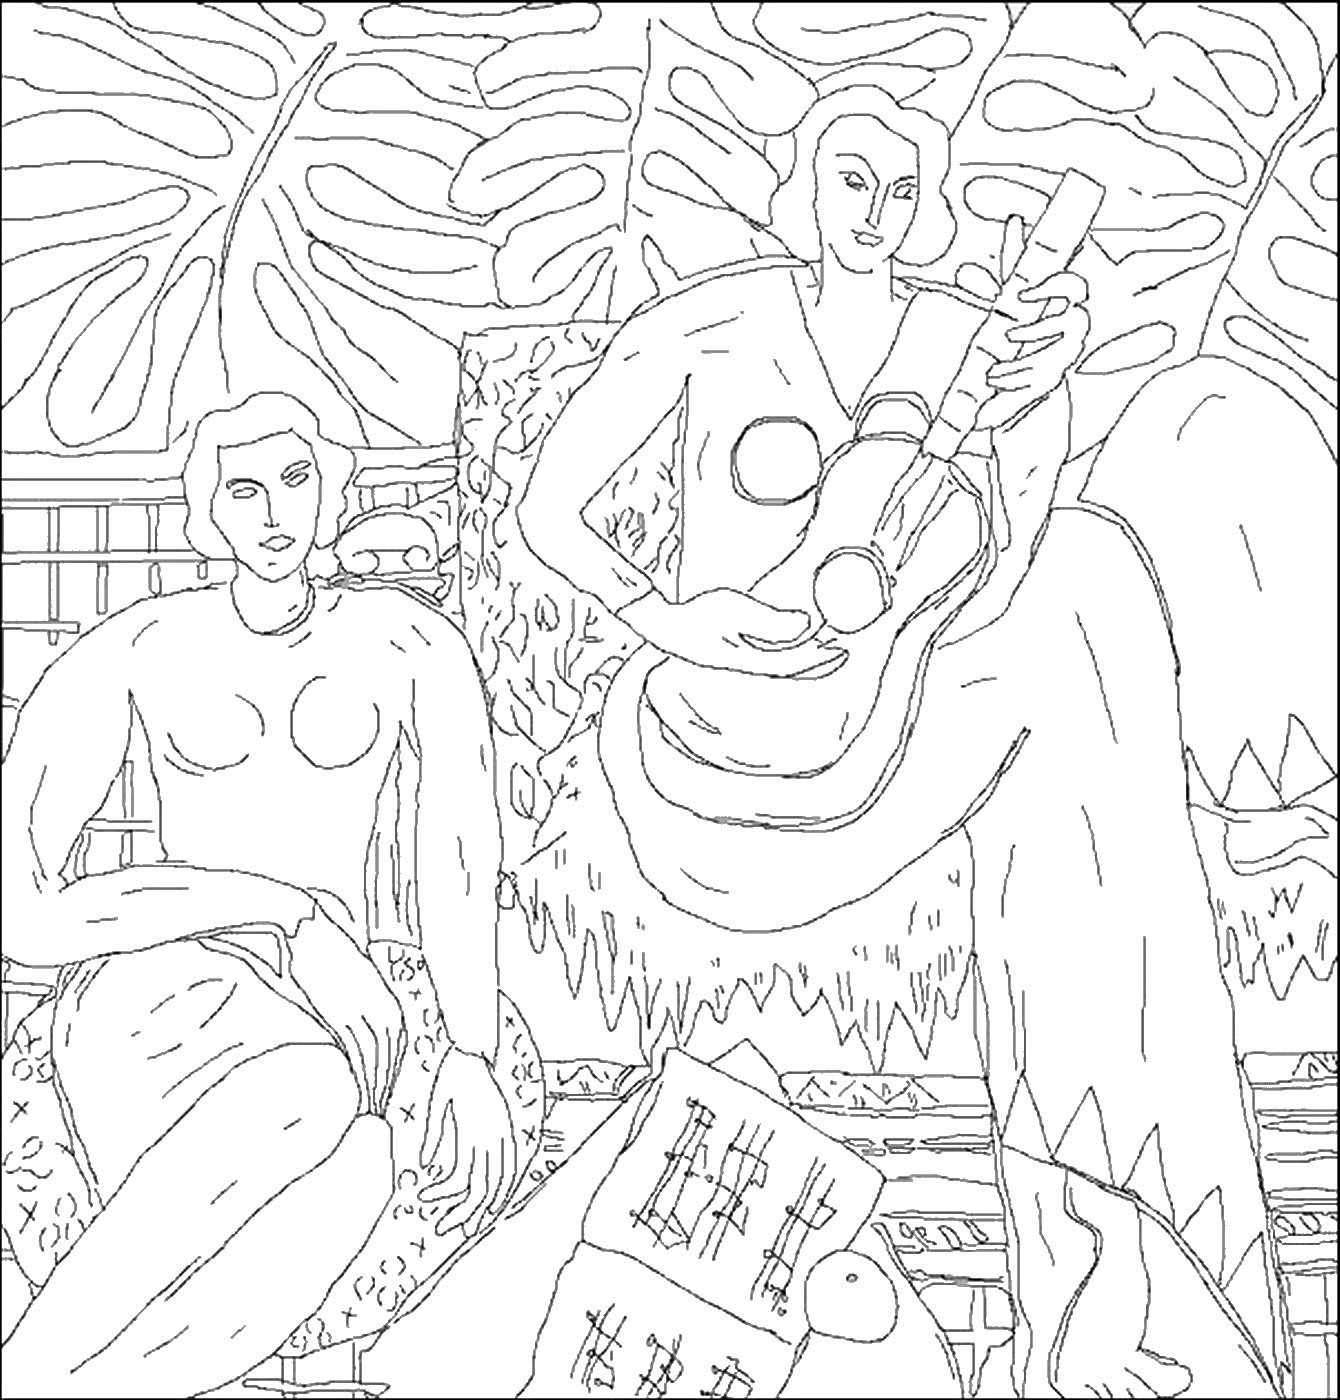 famous painting coloring pages famous painters and paintings coloring pages painting famous coloring pages 1 1